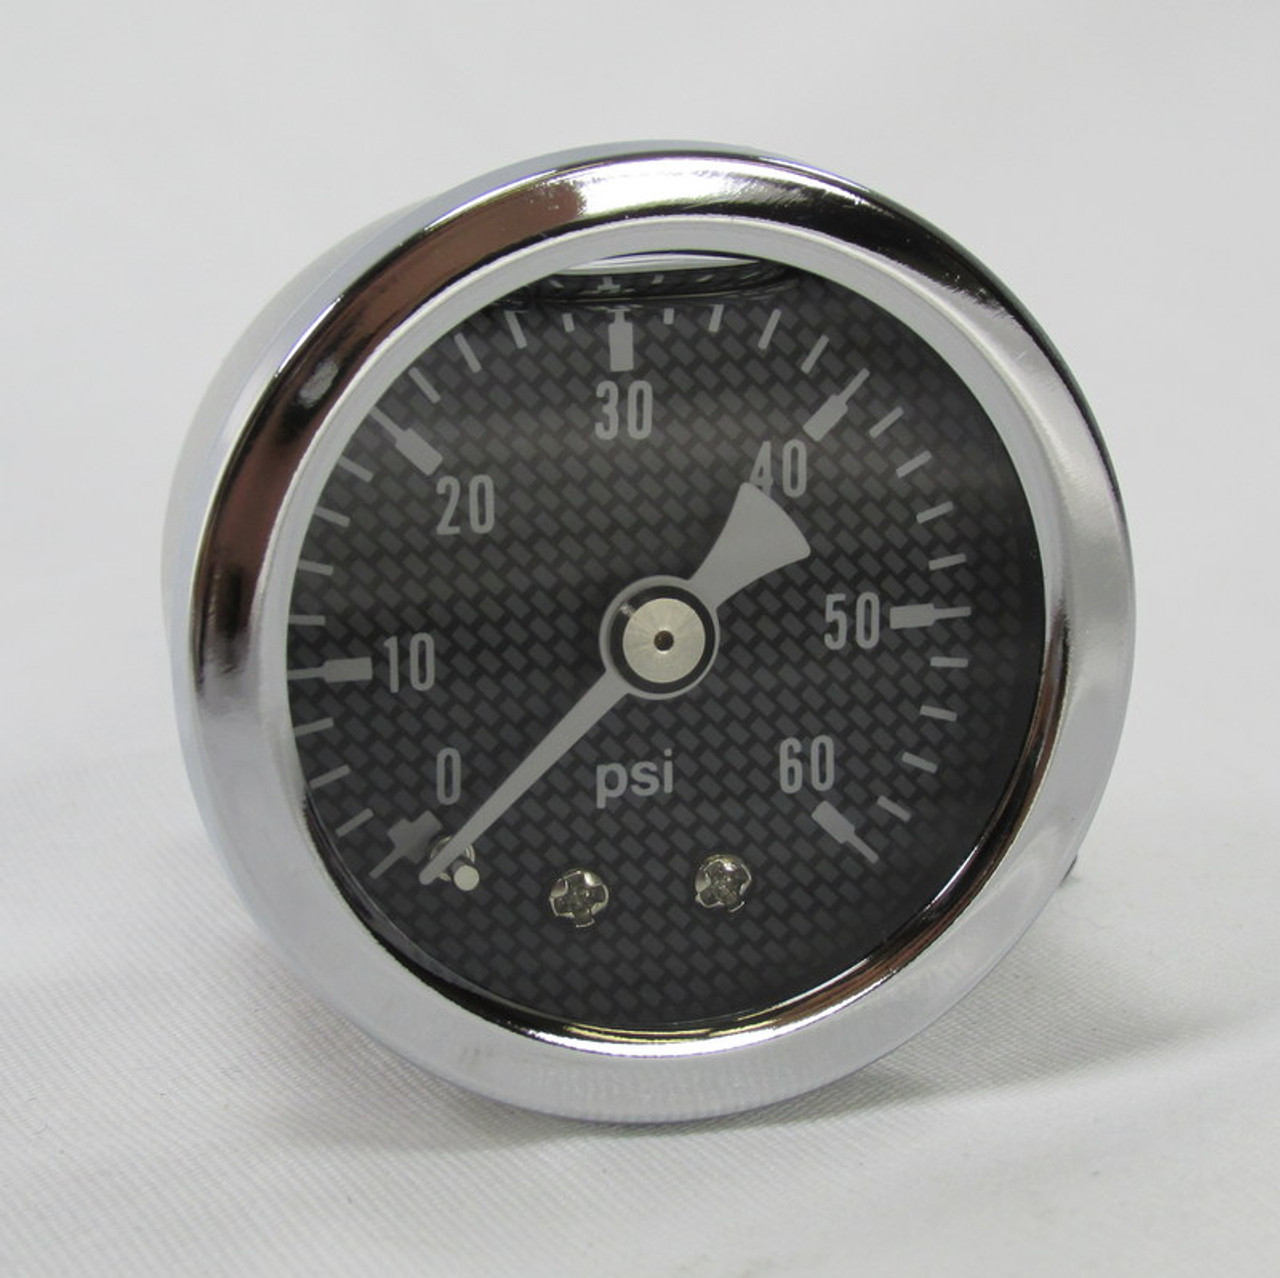 Harley BIG TWIN Oil Pressure Gauge W//Fitting USA 60 PSI Carbon Fibre